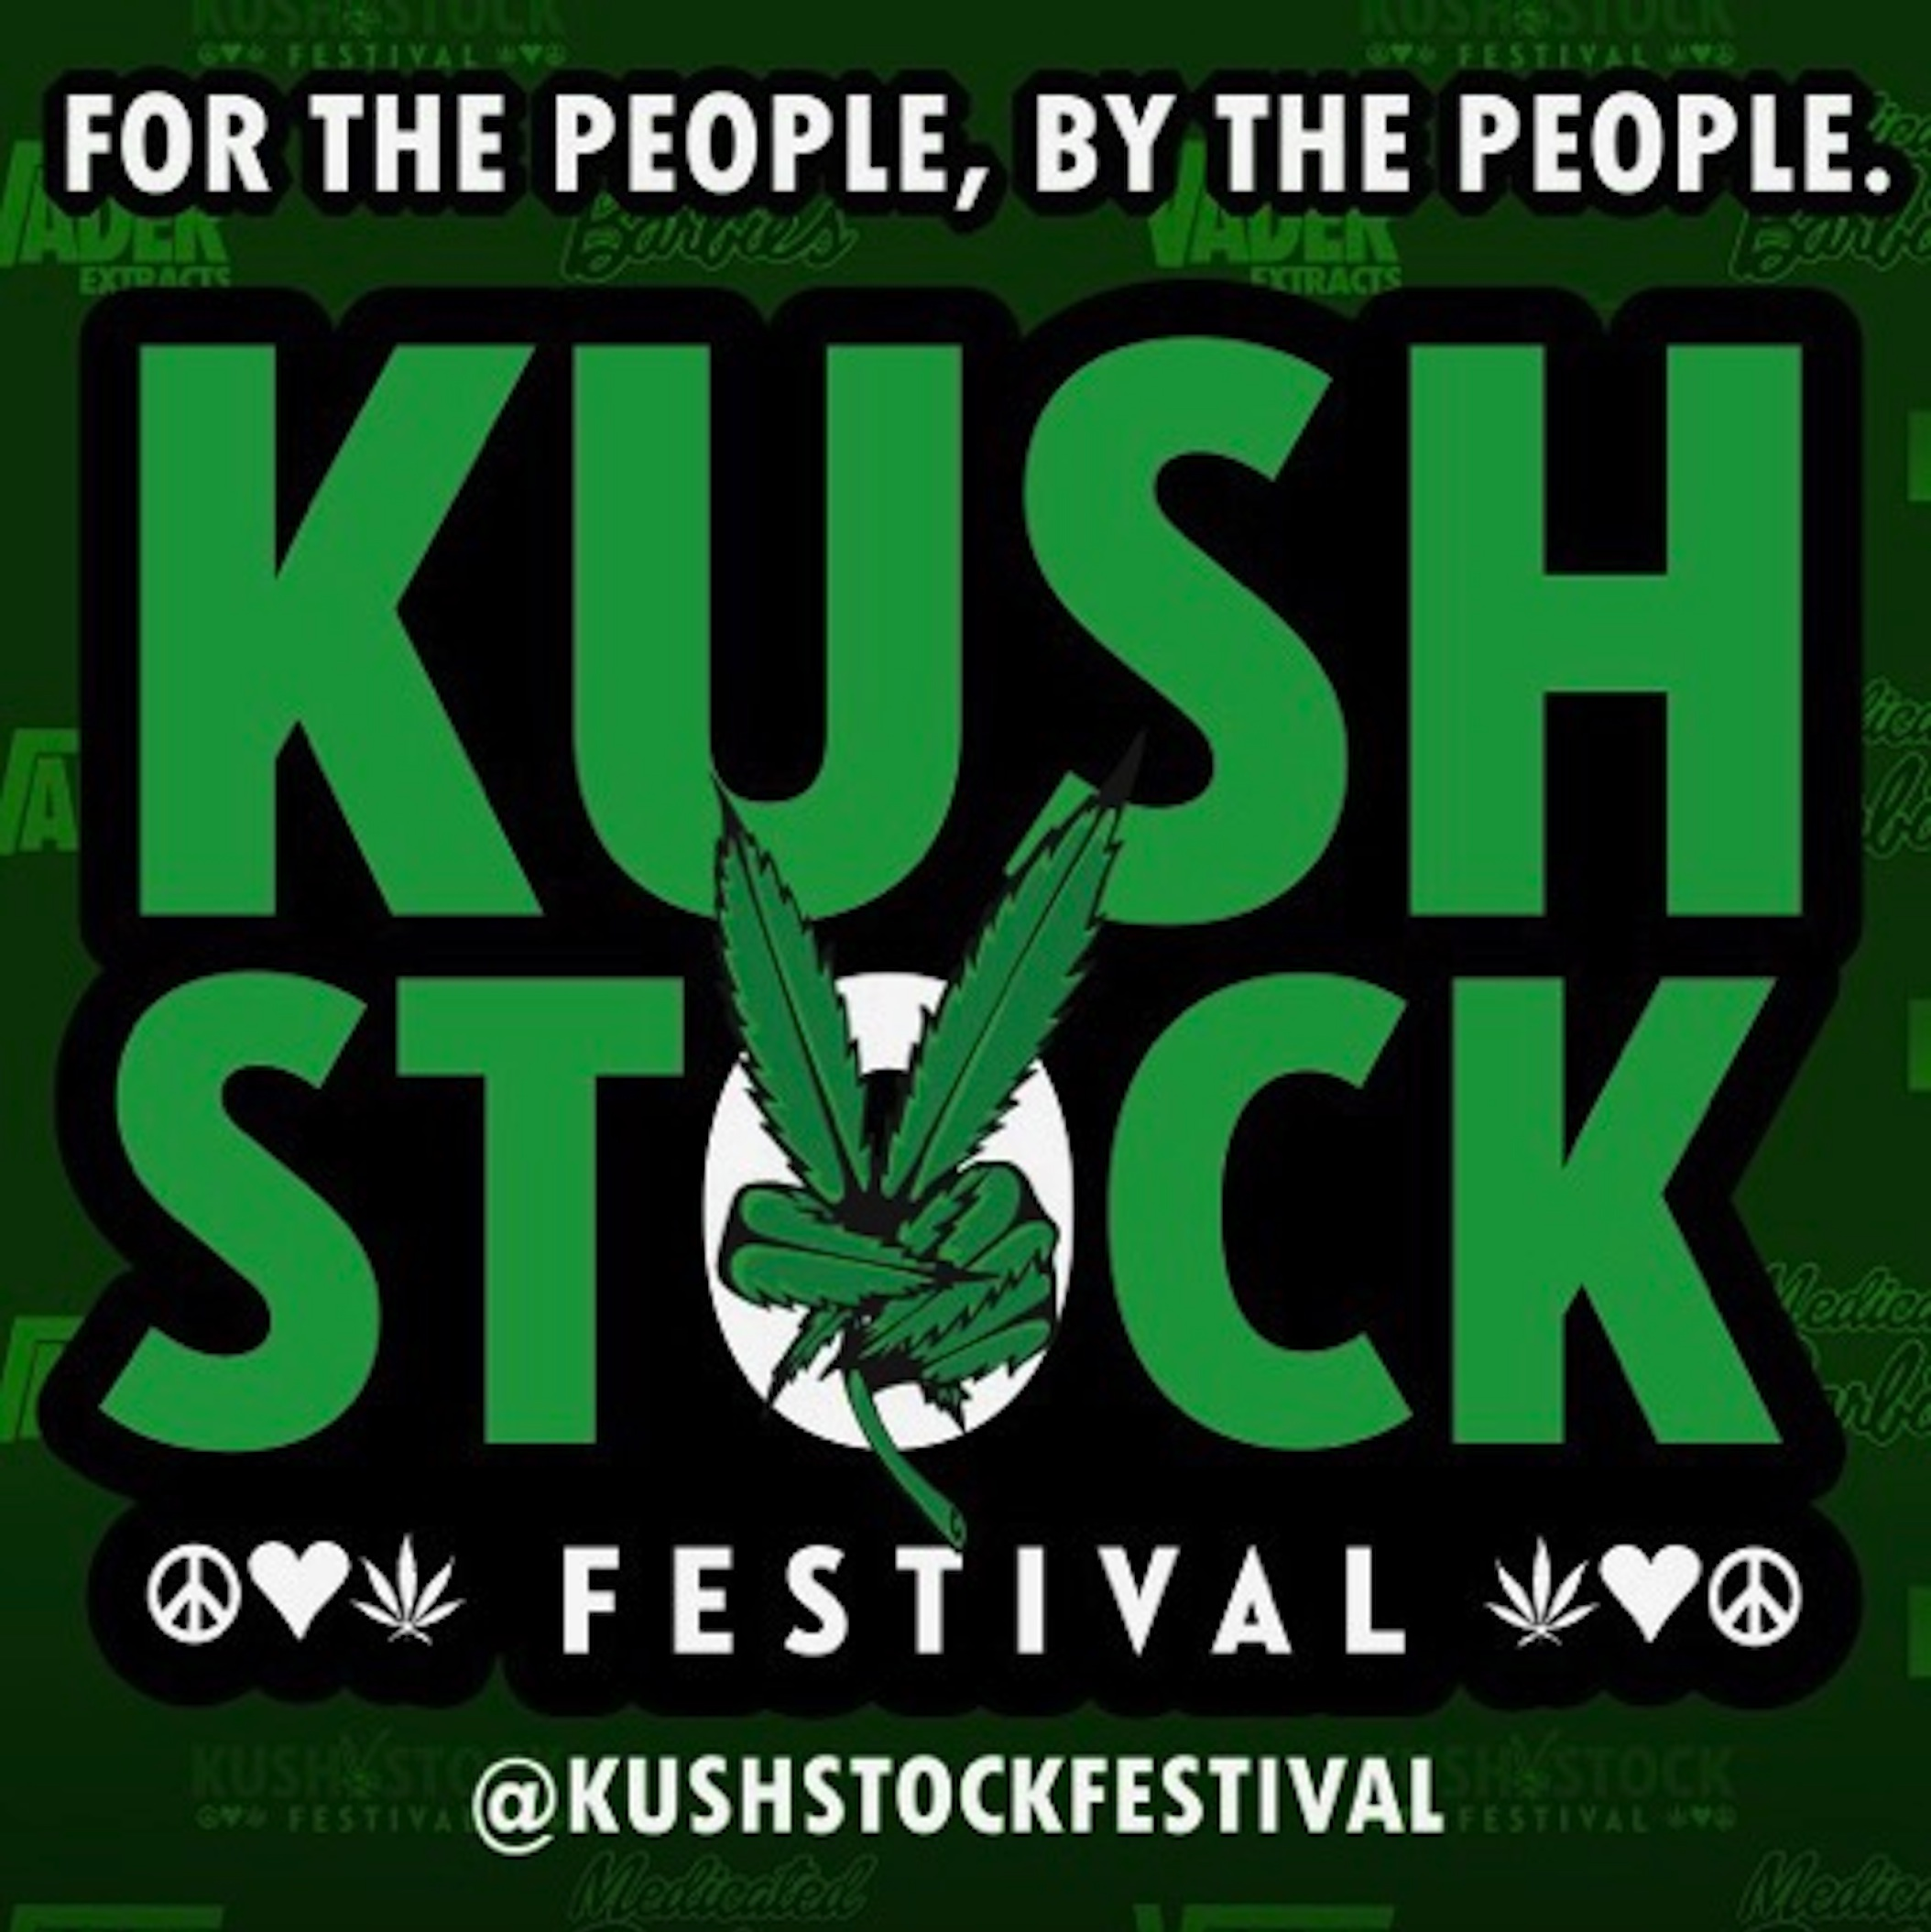 Kushstock Festival 8 isSaturday, November 2, 2019! - Get your tickets now…